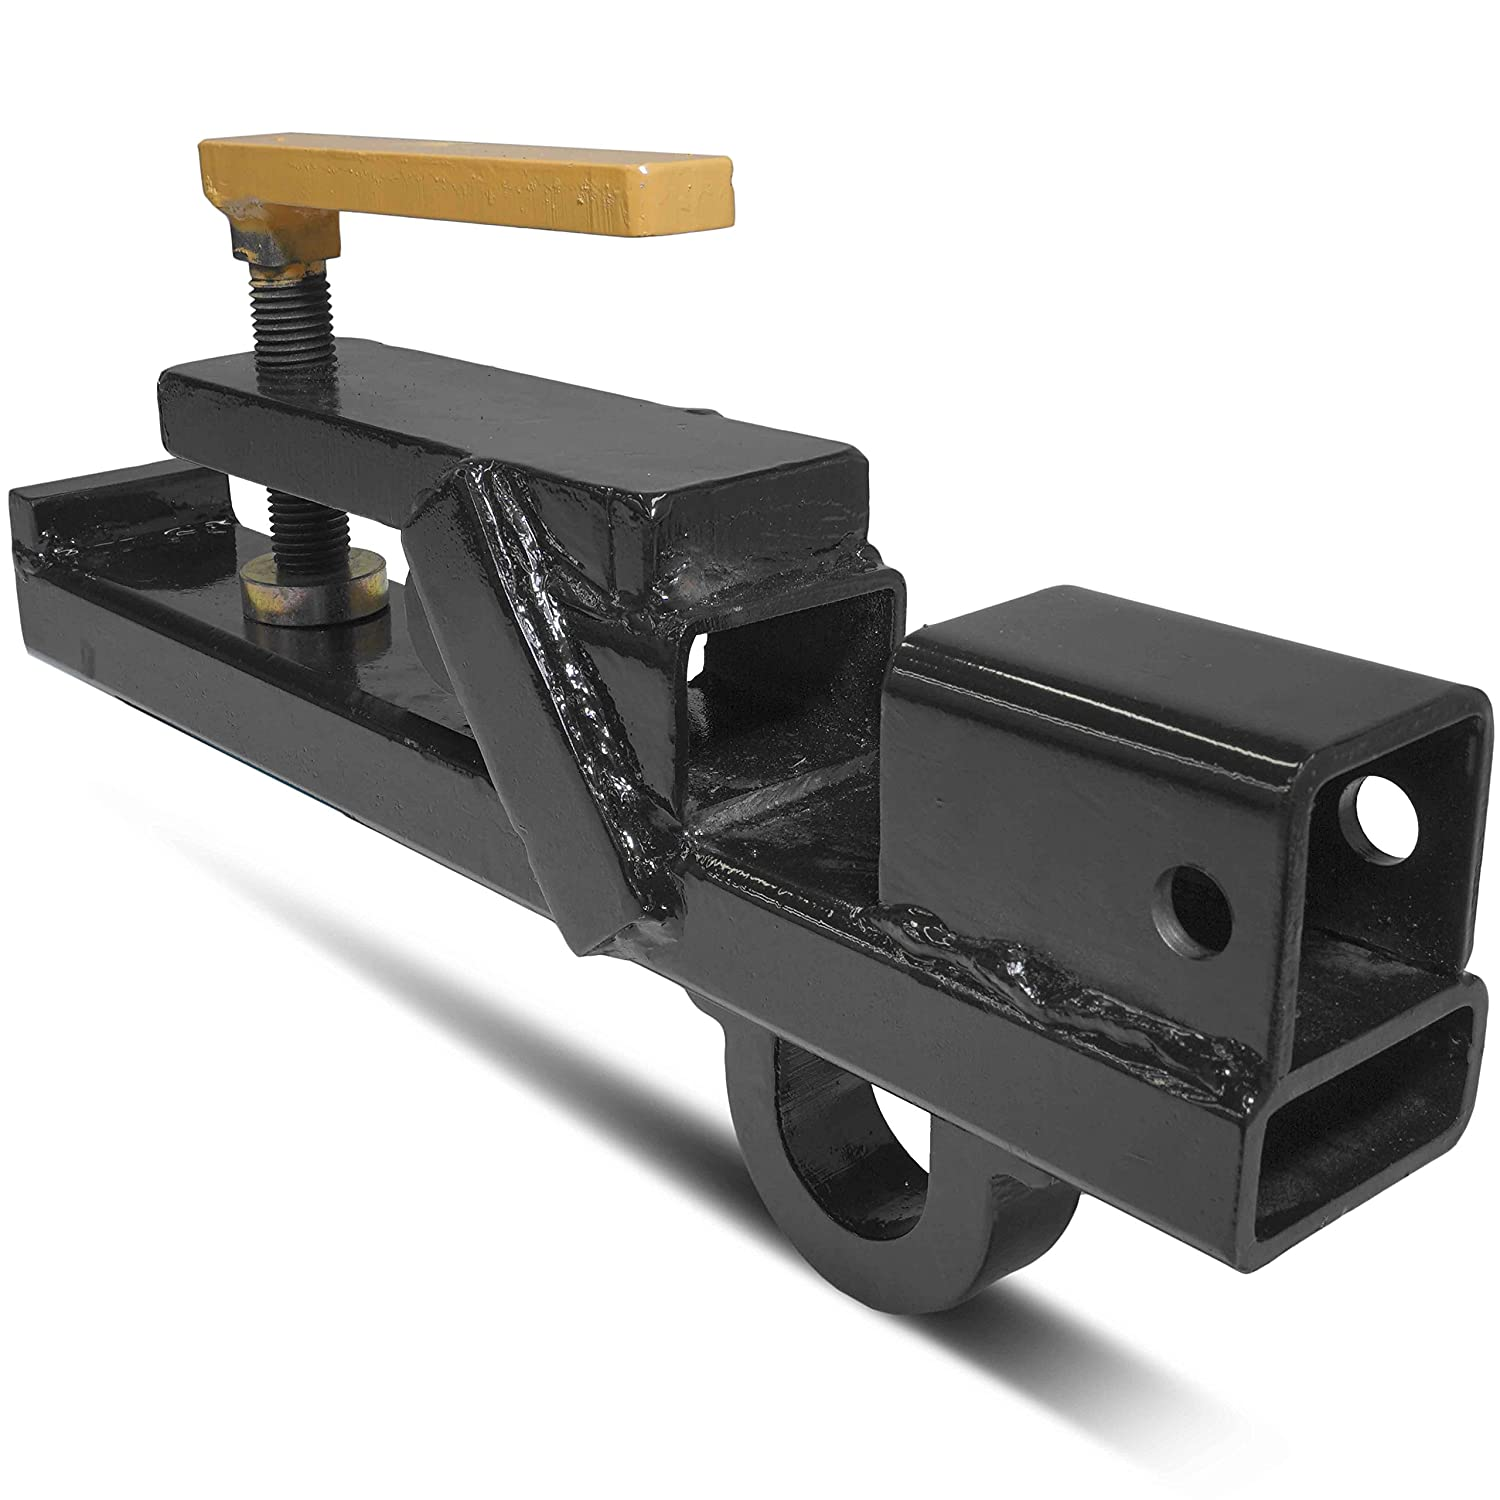 Titan Attachments Clamp On Tractor Bucket Hitch Receiver Skid Steer Bobcat lift ring BH-WH